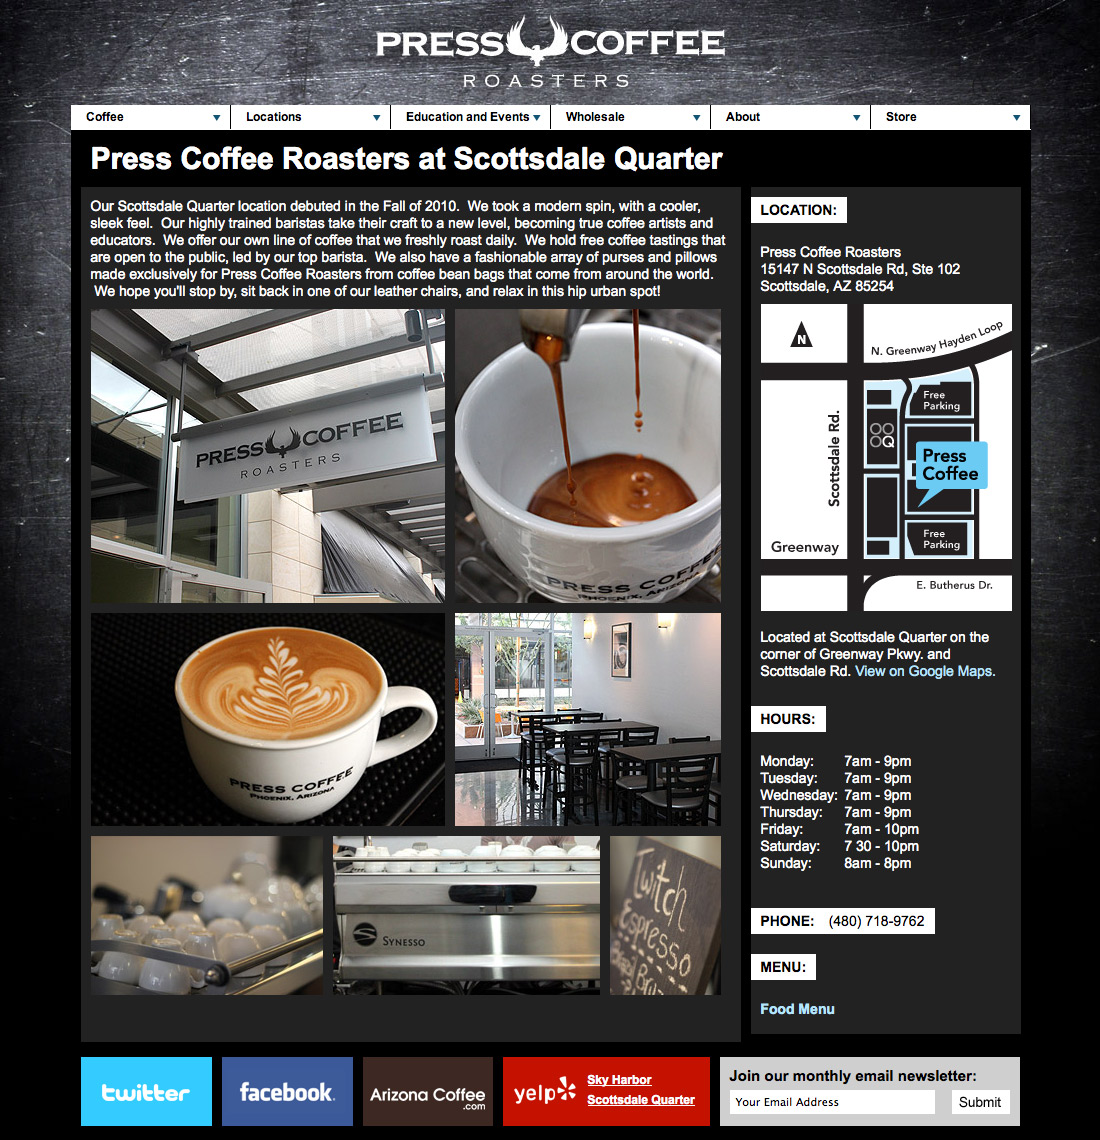 press-coffee-roasters-scottsdale